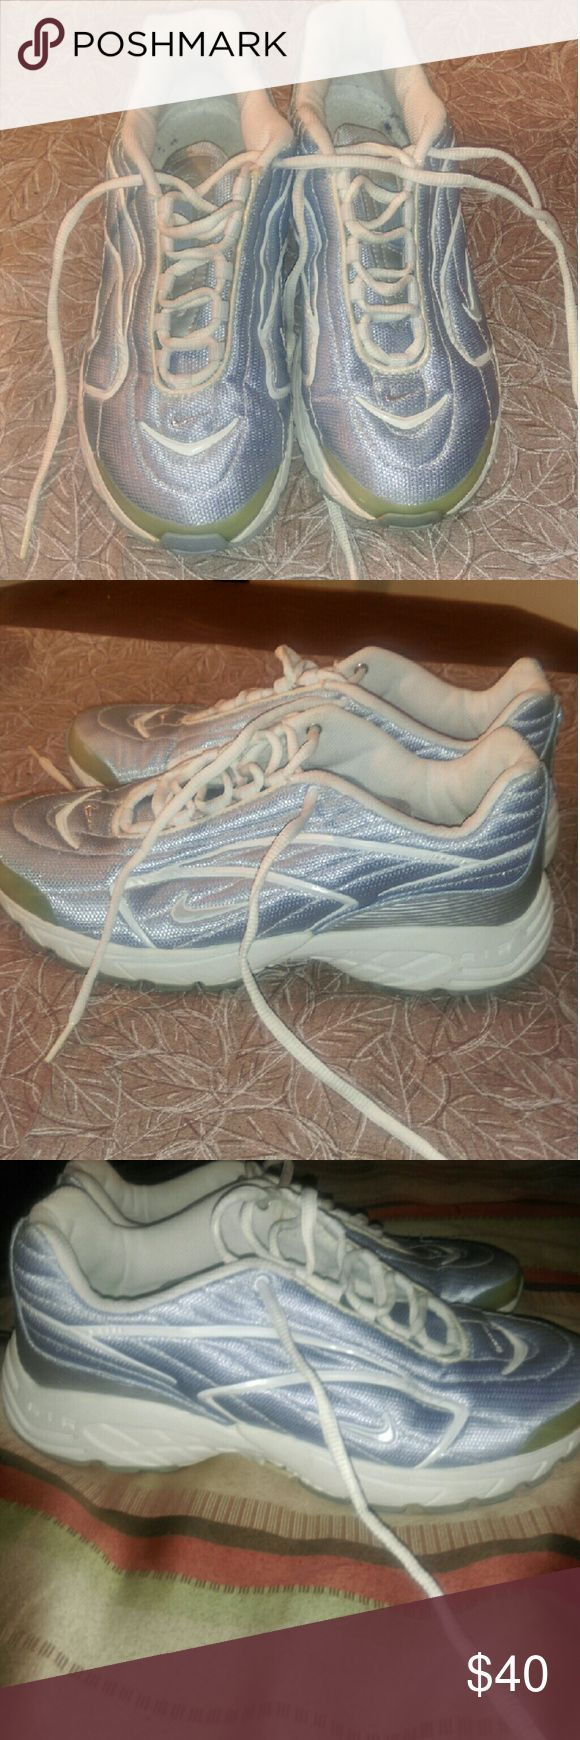 Ladies sz 9.5 light blue&white running shoes Ladies sz 9.5 light blue&white running shoes, these shoes are in excellent condition....no signs of wear and tear... Nike Shoes Athletic Shoes